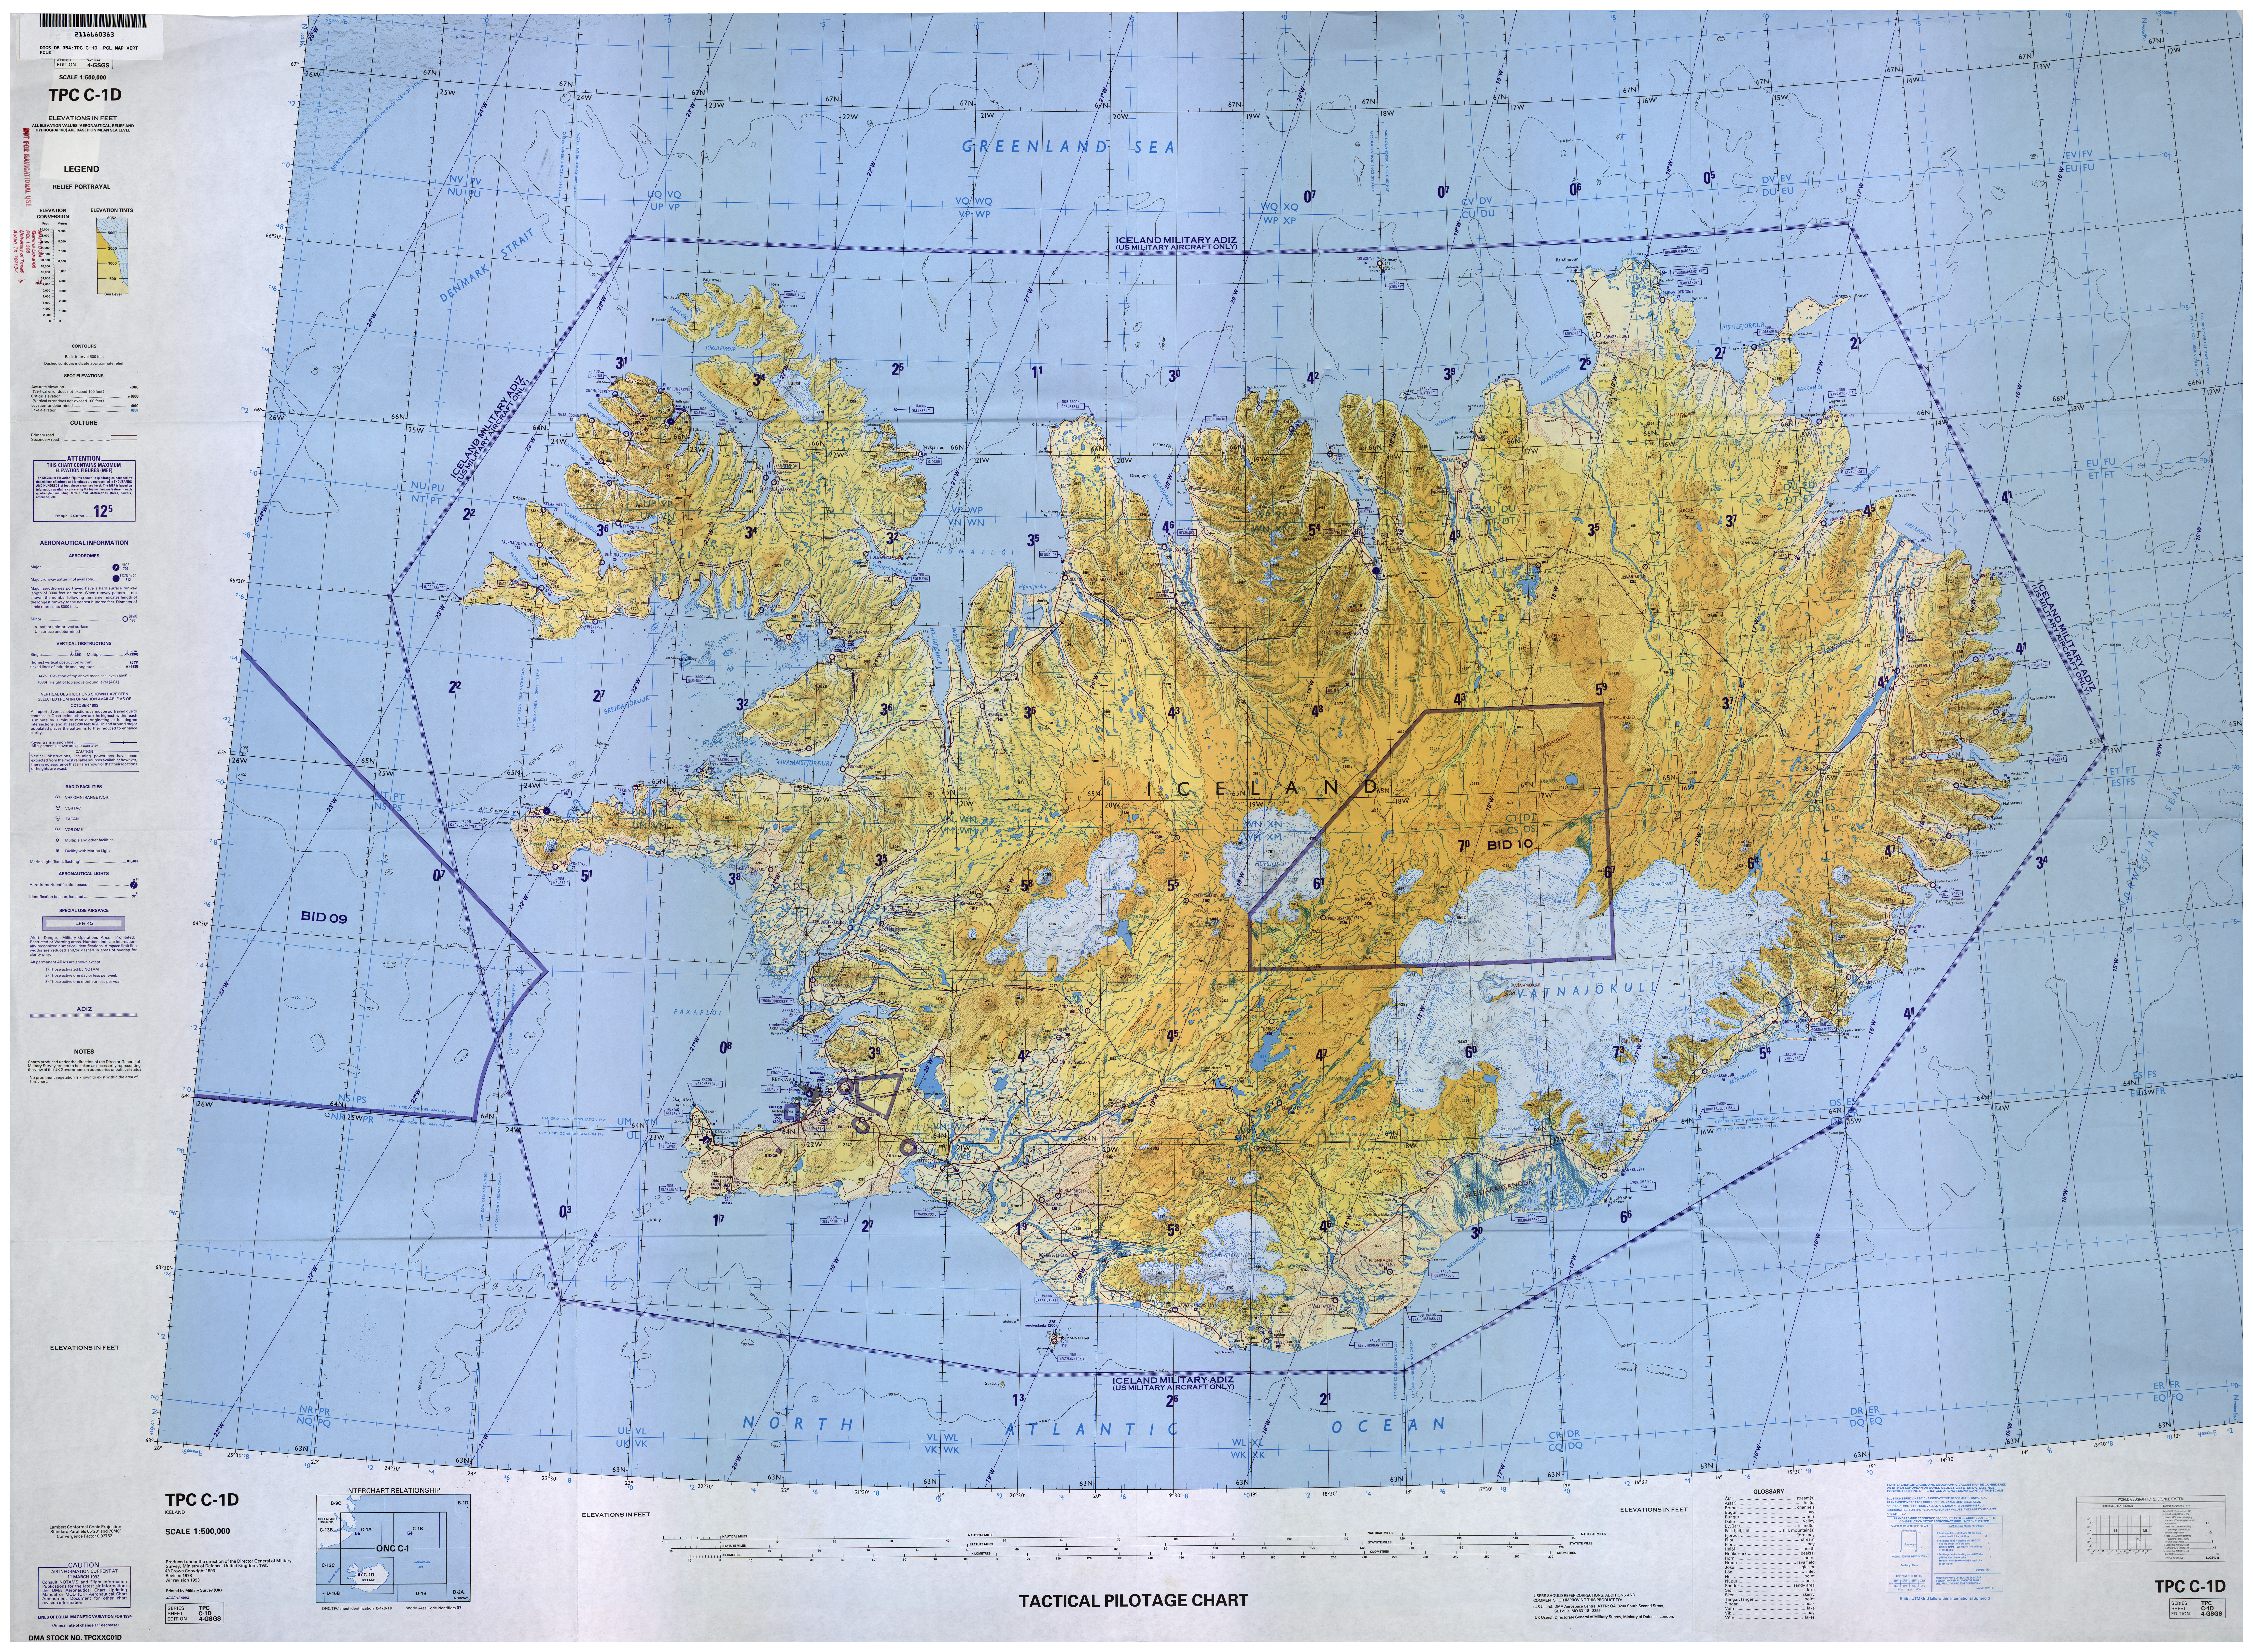 Tactical Pilotage Charts Perry Castaneda Map Collection Ut - Us-map-chart